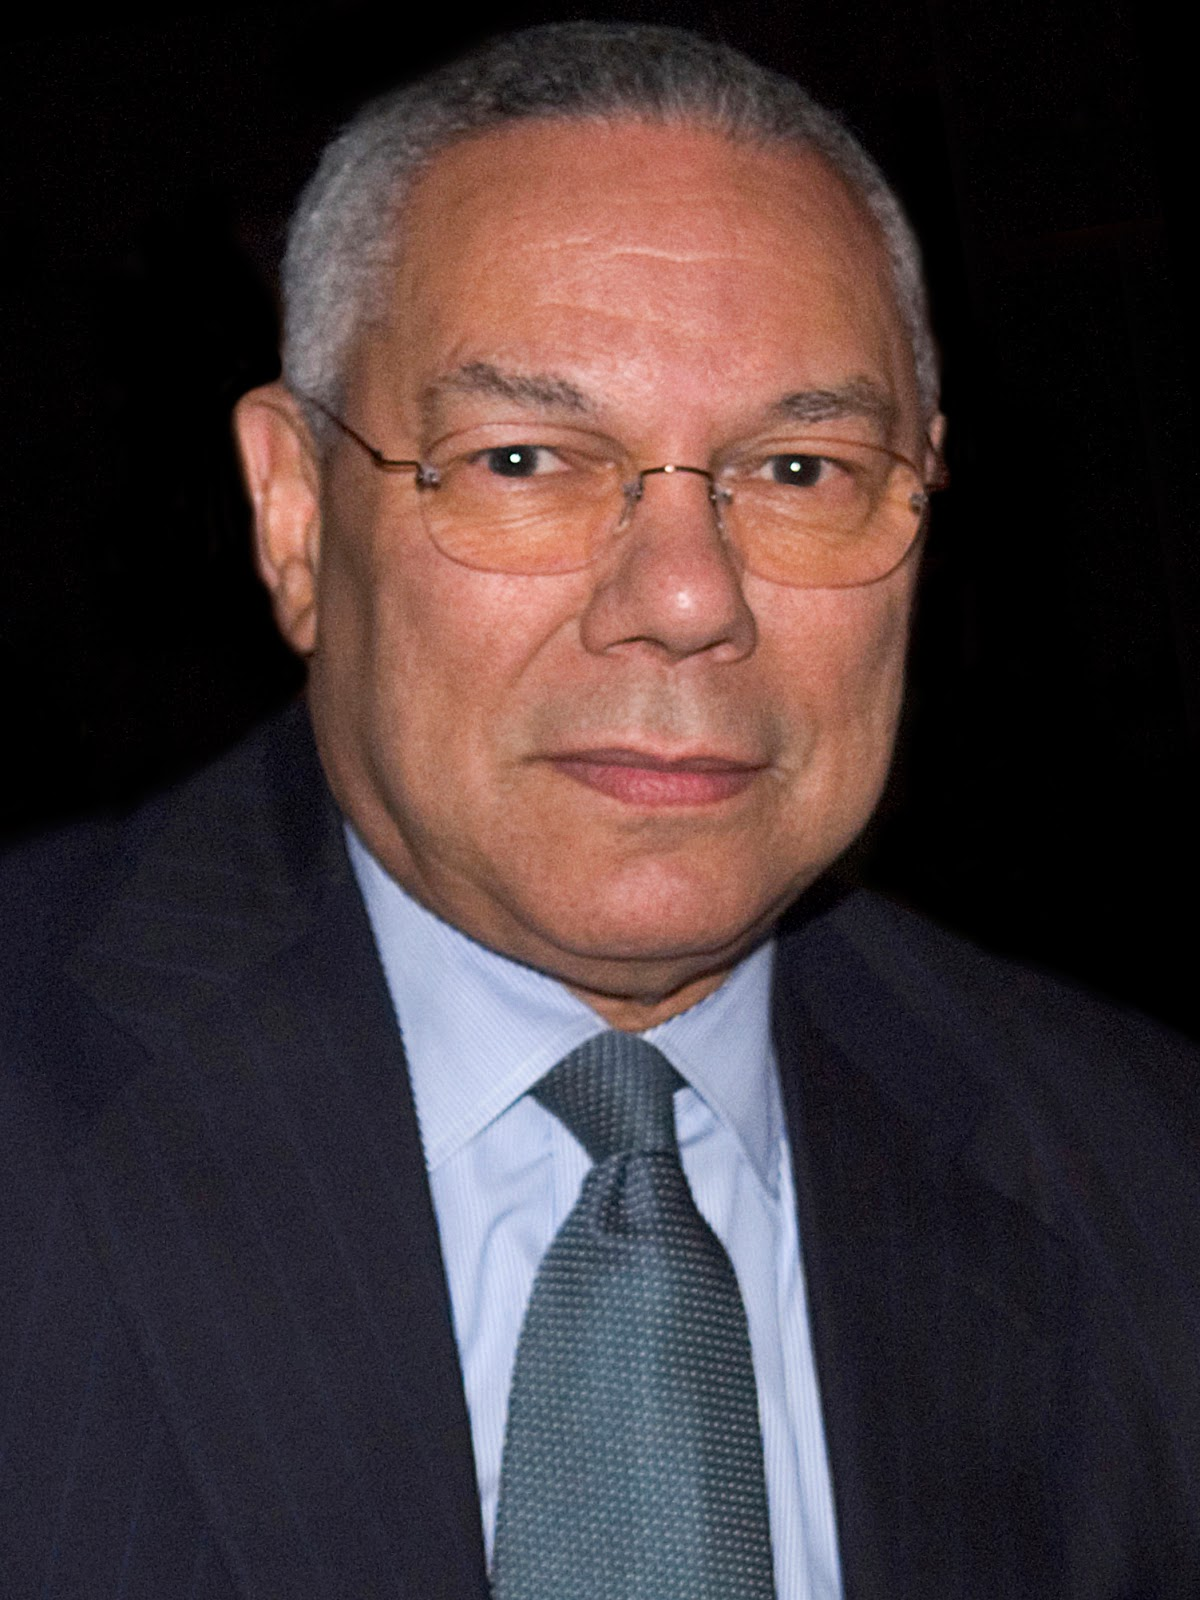 colin powell Colin l powell associate after graduating from baylor university school of law, colin began his legal career at hdbd with a focus in product liability.